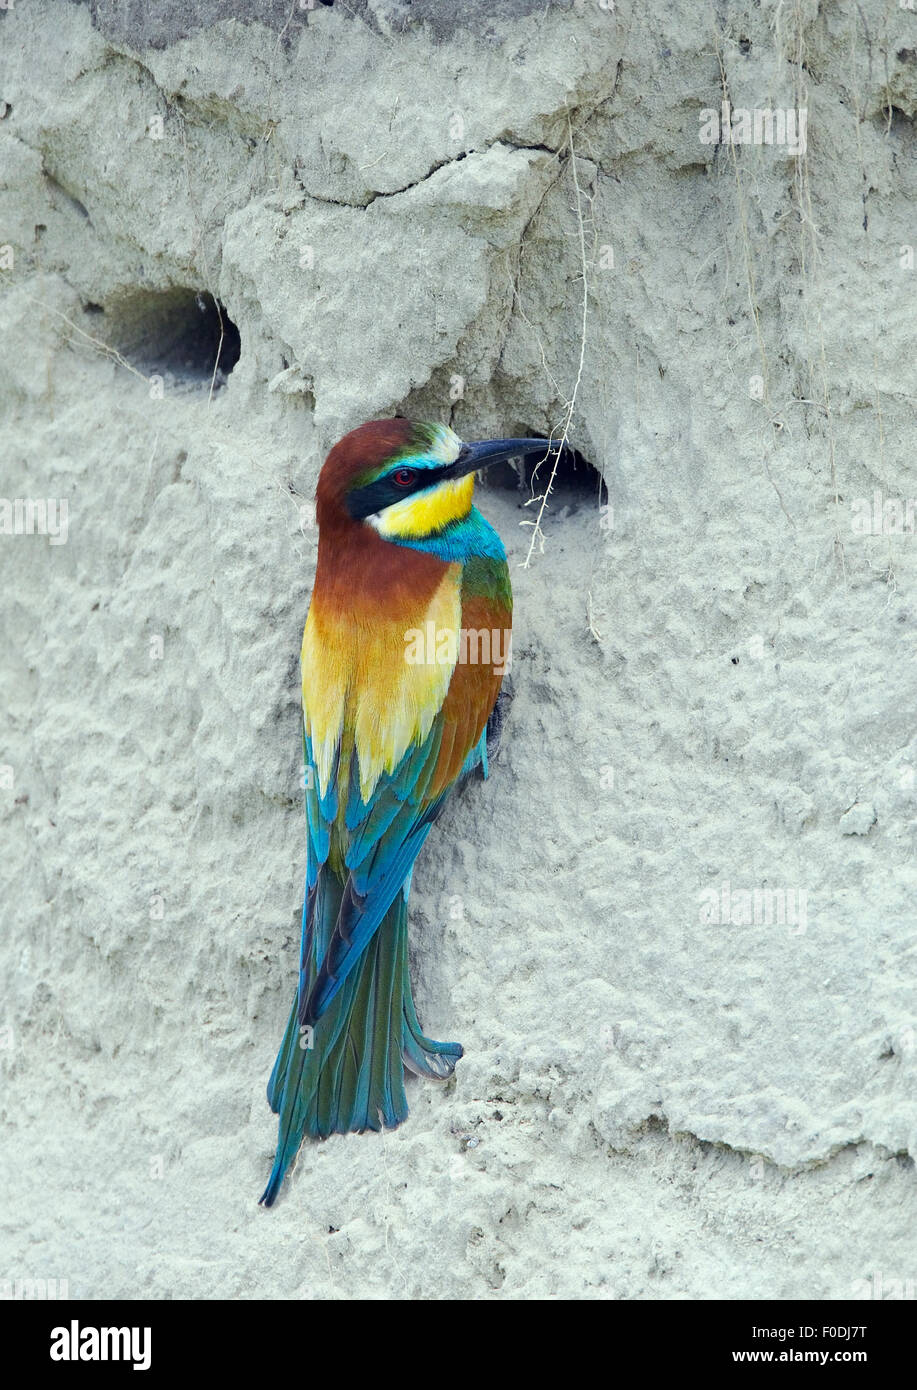 European Bee-eater (Merops apiaster) at nest hole in sand bank, Pusztaszer, Hungary, May 2008 - Stock Image